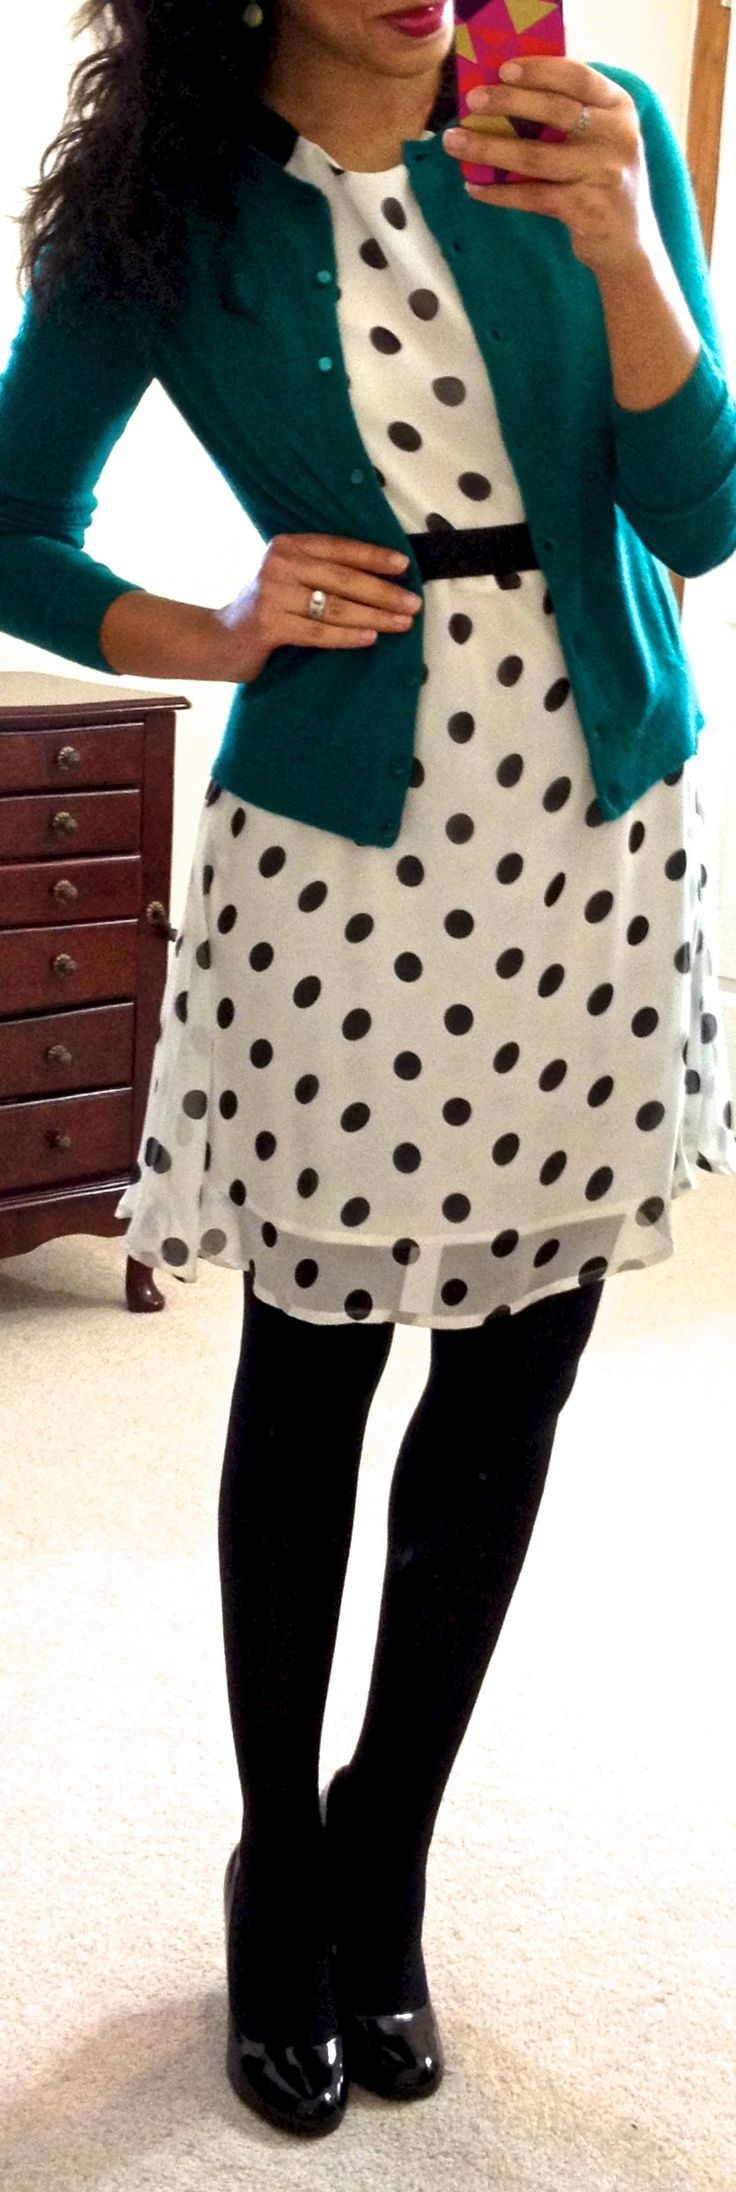 polka dot dress, cardigan, black tights, black shoes. {teacher fashion outfit Lehrerin Kleidung}: